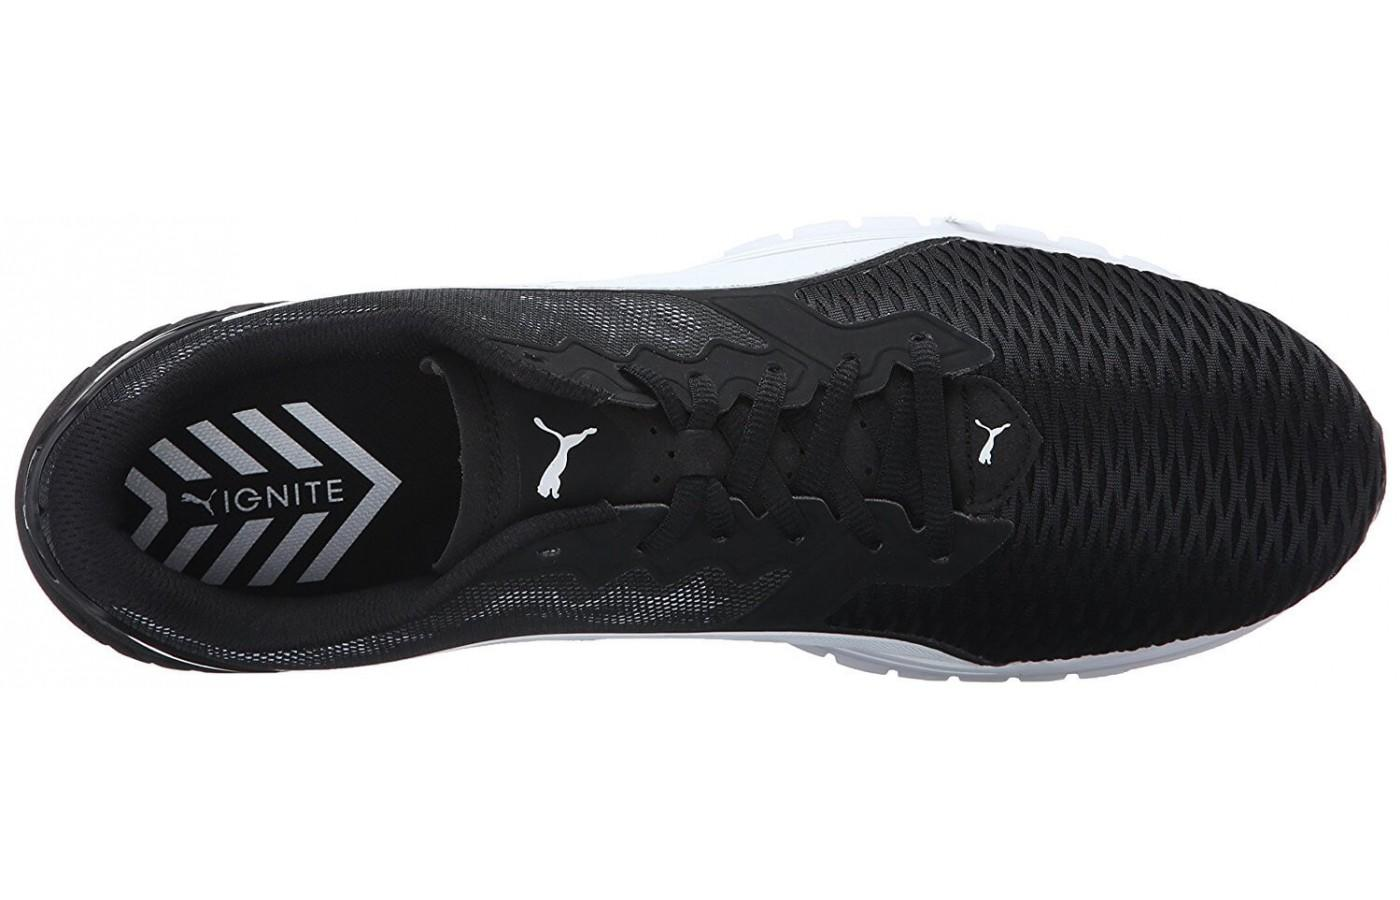 Puma Ignite Dual Reviewed - To Buy or Not in Mar 2019  0e21b6ae7